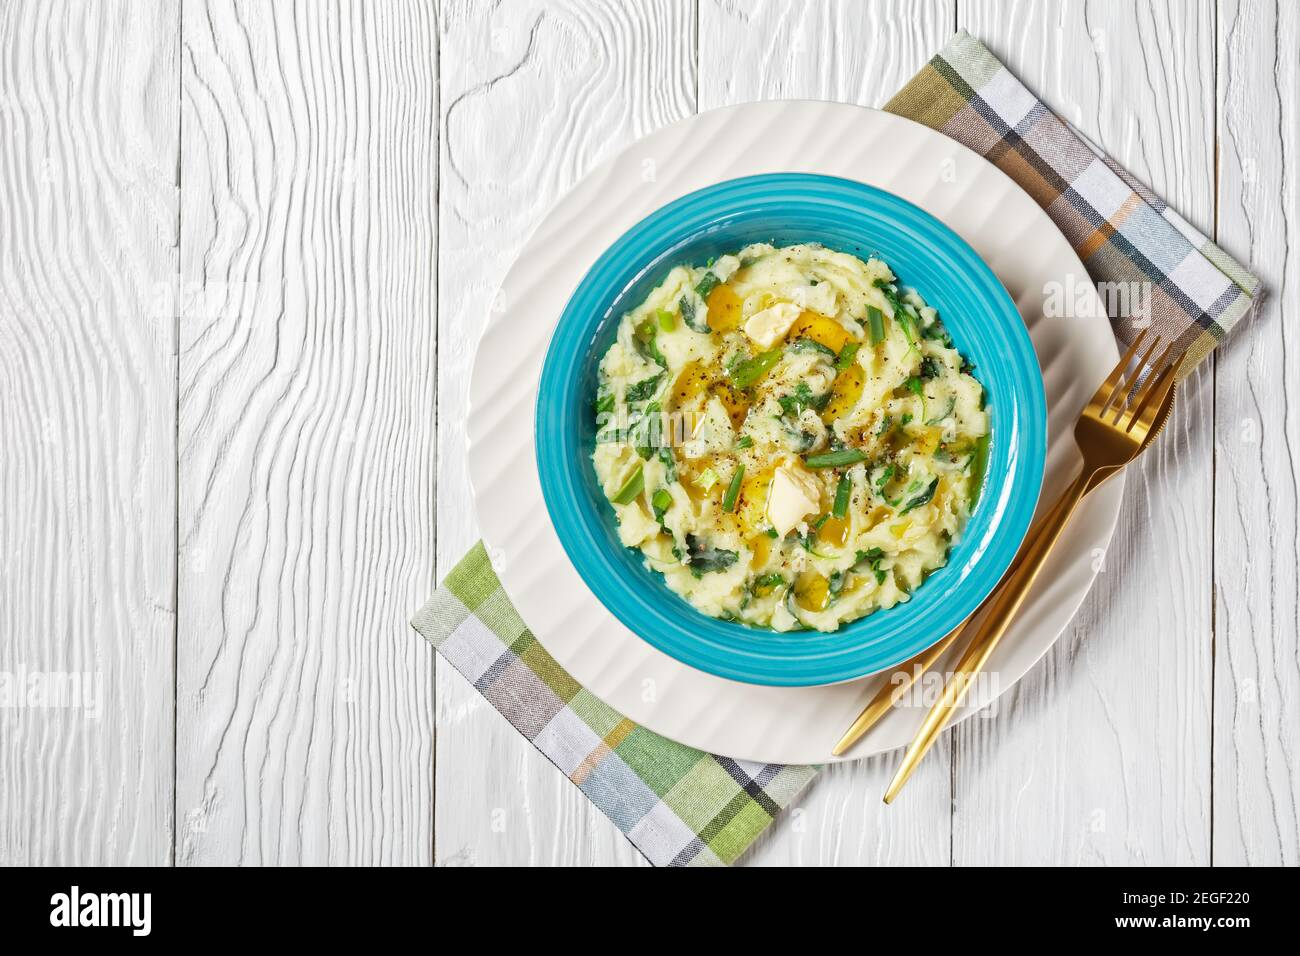 Creamy irish colcannon traditional potato mash with kale, garlic, melted butter and spring onion served on a blue bowl with cutlery on a white wooden Stock Photo